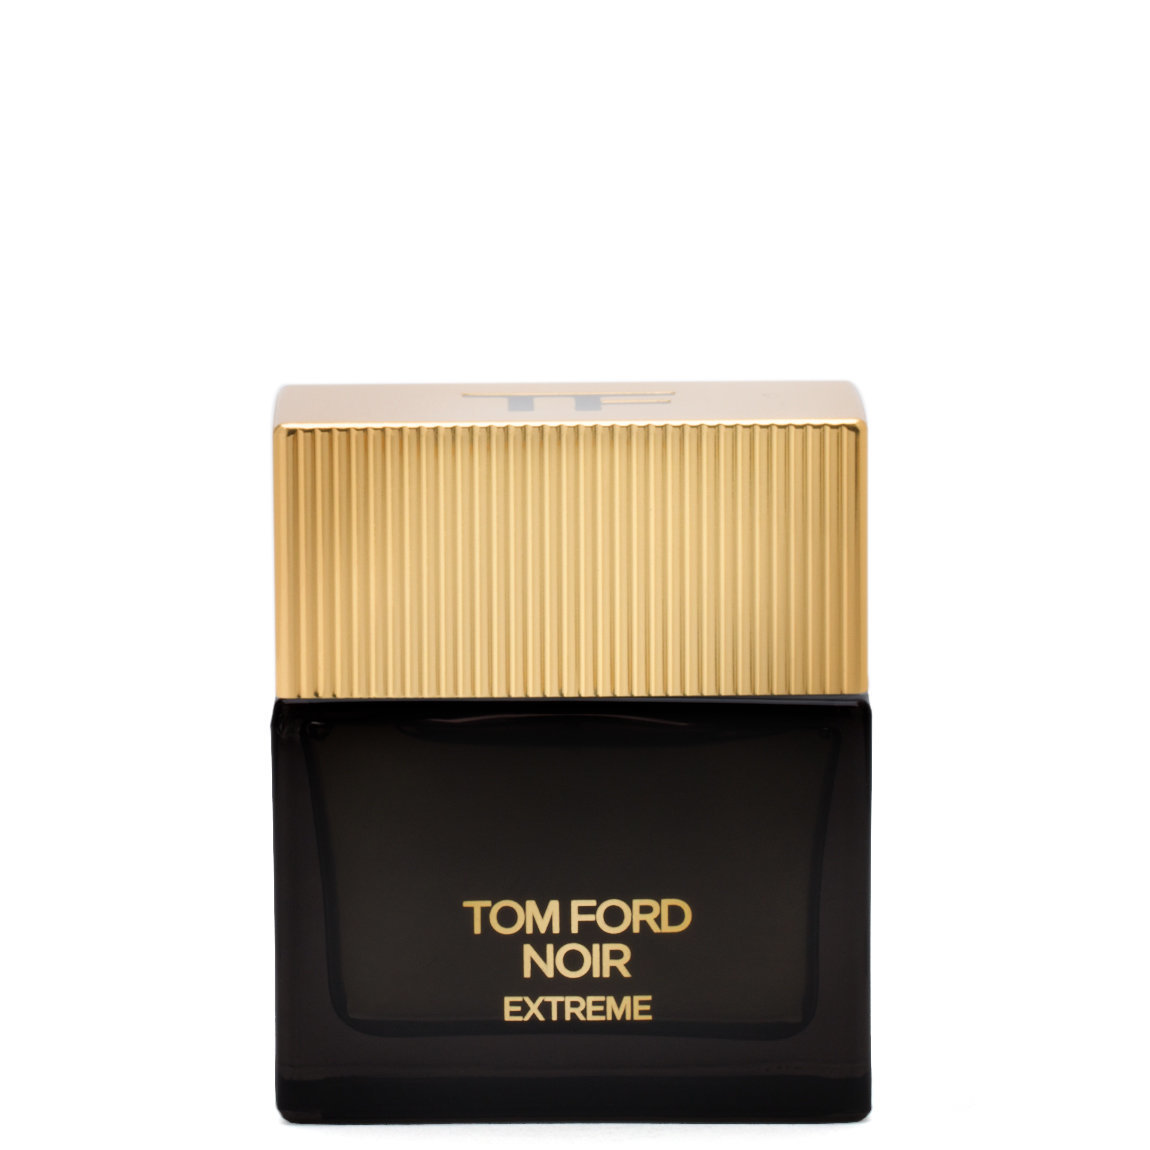 TOM FORD Tom Ford Noir Extreme 50 ml product swatch.